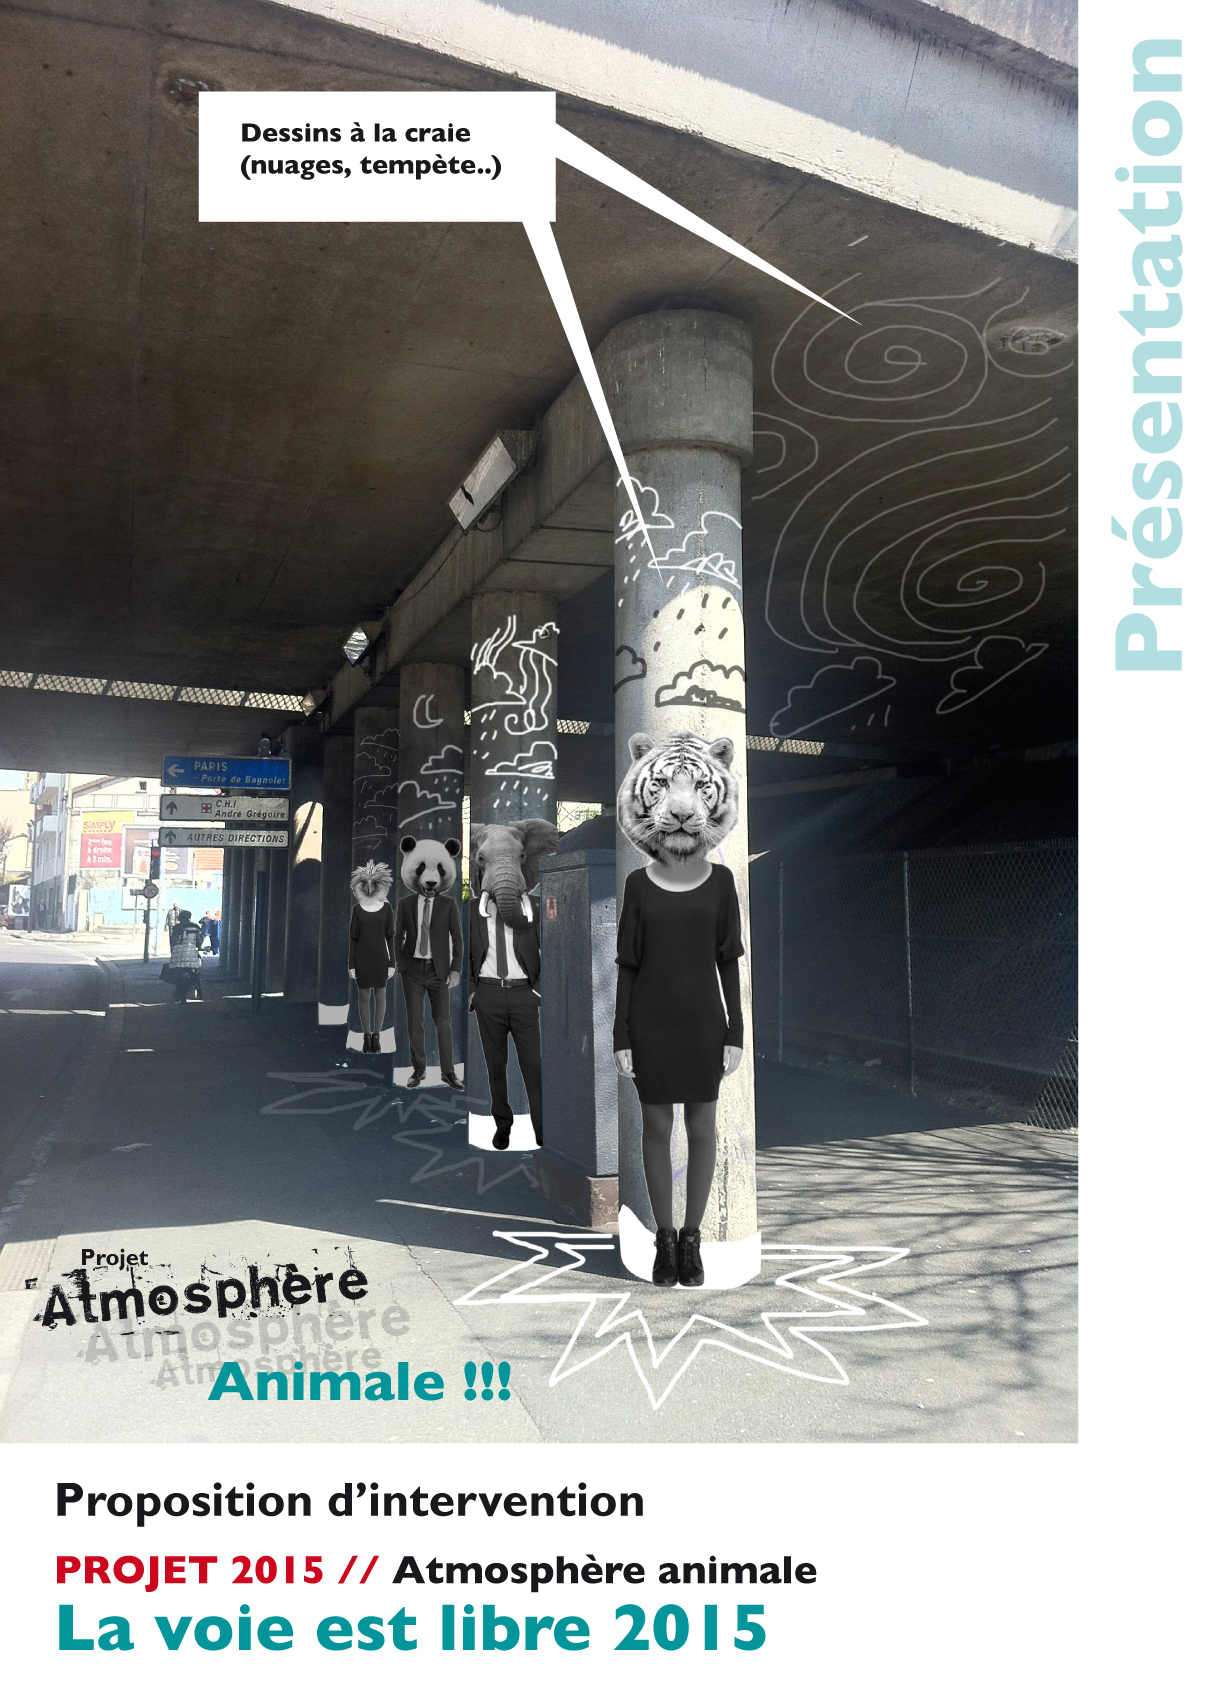 PROJET-ATMOSPHERE-animale-2